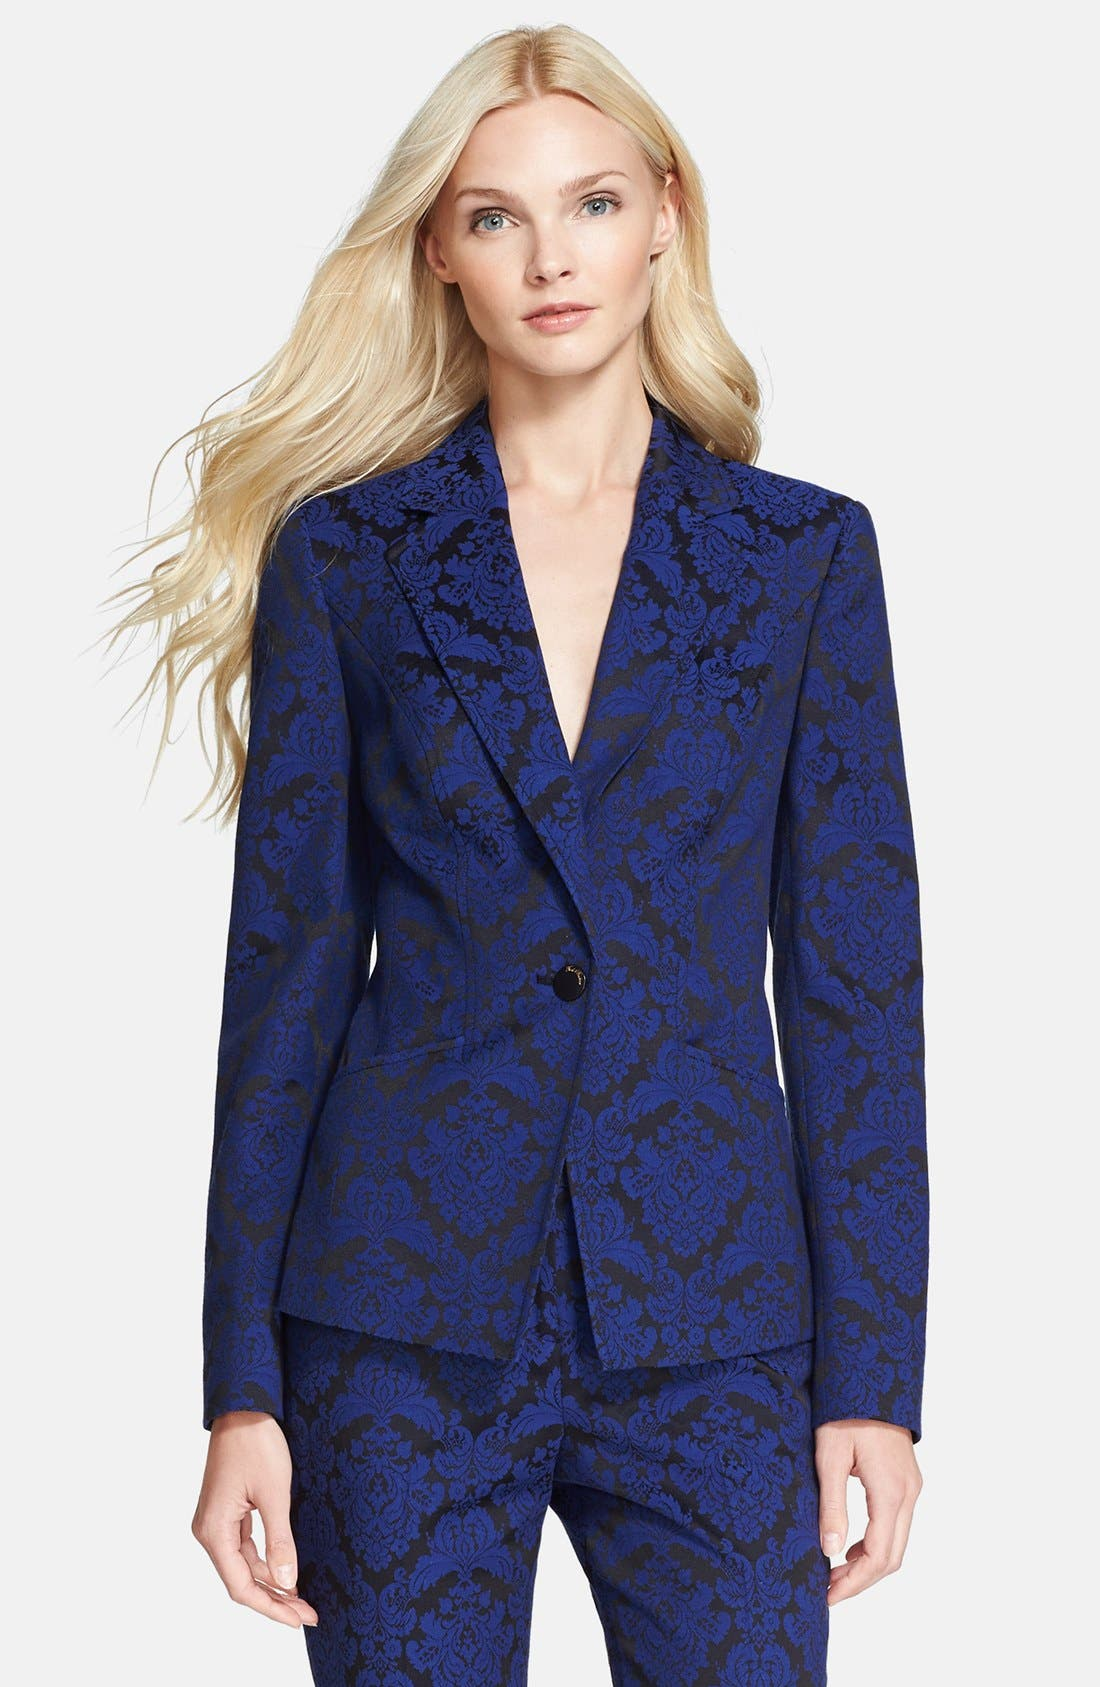 Main Image - Ted Baker London Jacquard Suit Jacket